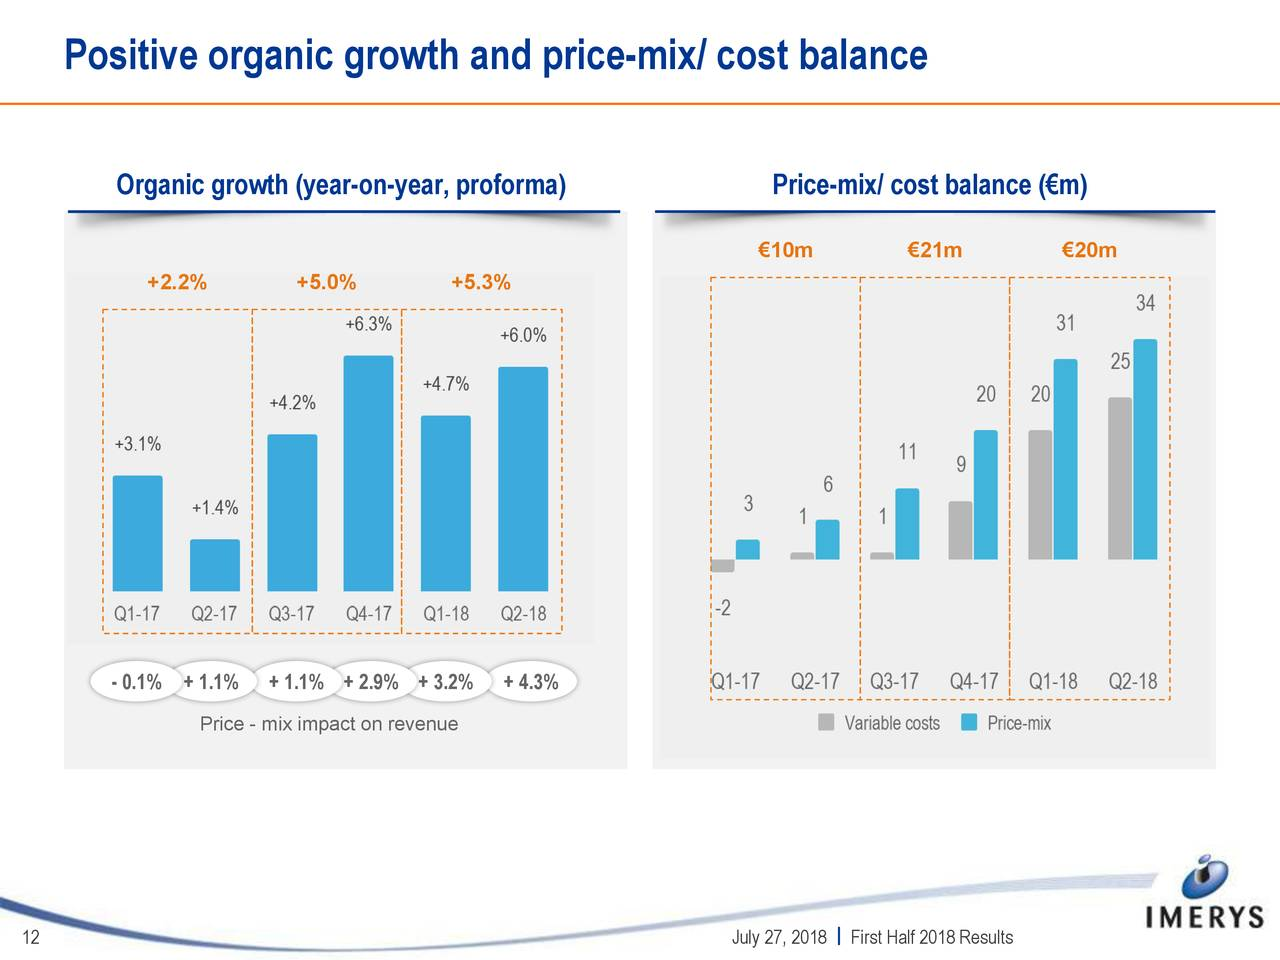 organic growth of ryanair Henry harteveldt, industry analyst with hudson crossing, said that ryanair's organic growth has slowed, and the company knows it has to modify its model what's more, said aviation industry.